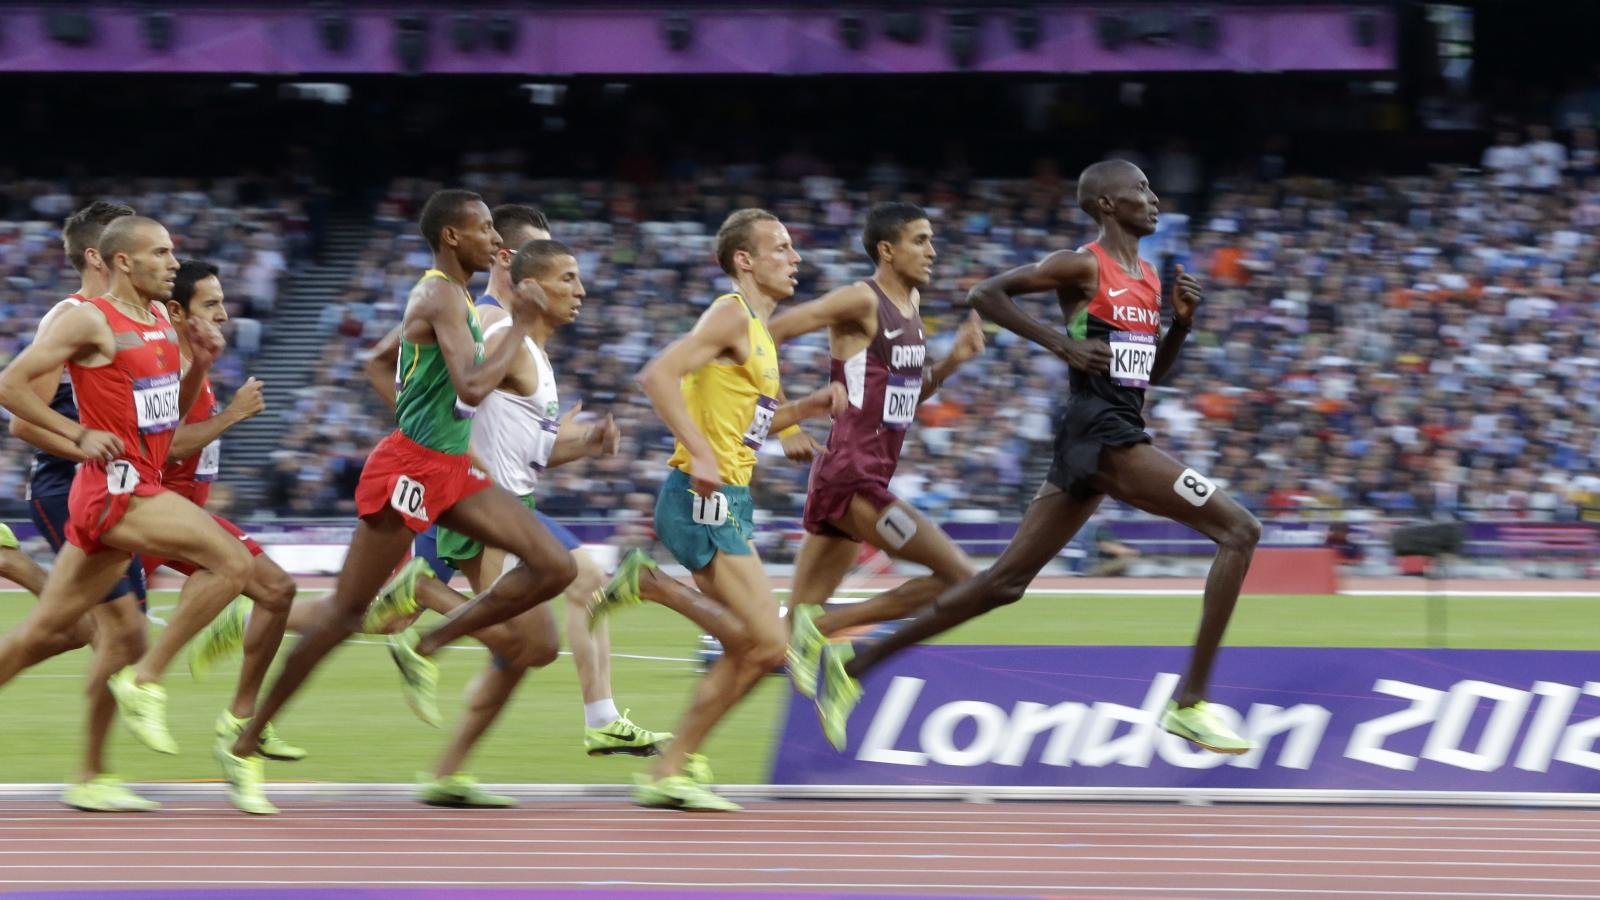 Rio Olympics 2016: Why do the track athletes run the 1500 meters instead of  the mile? — Quartz